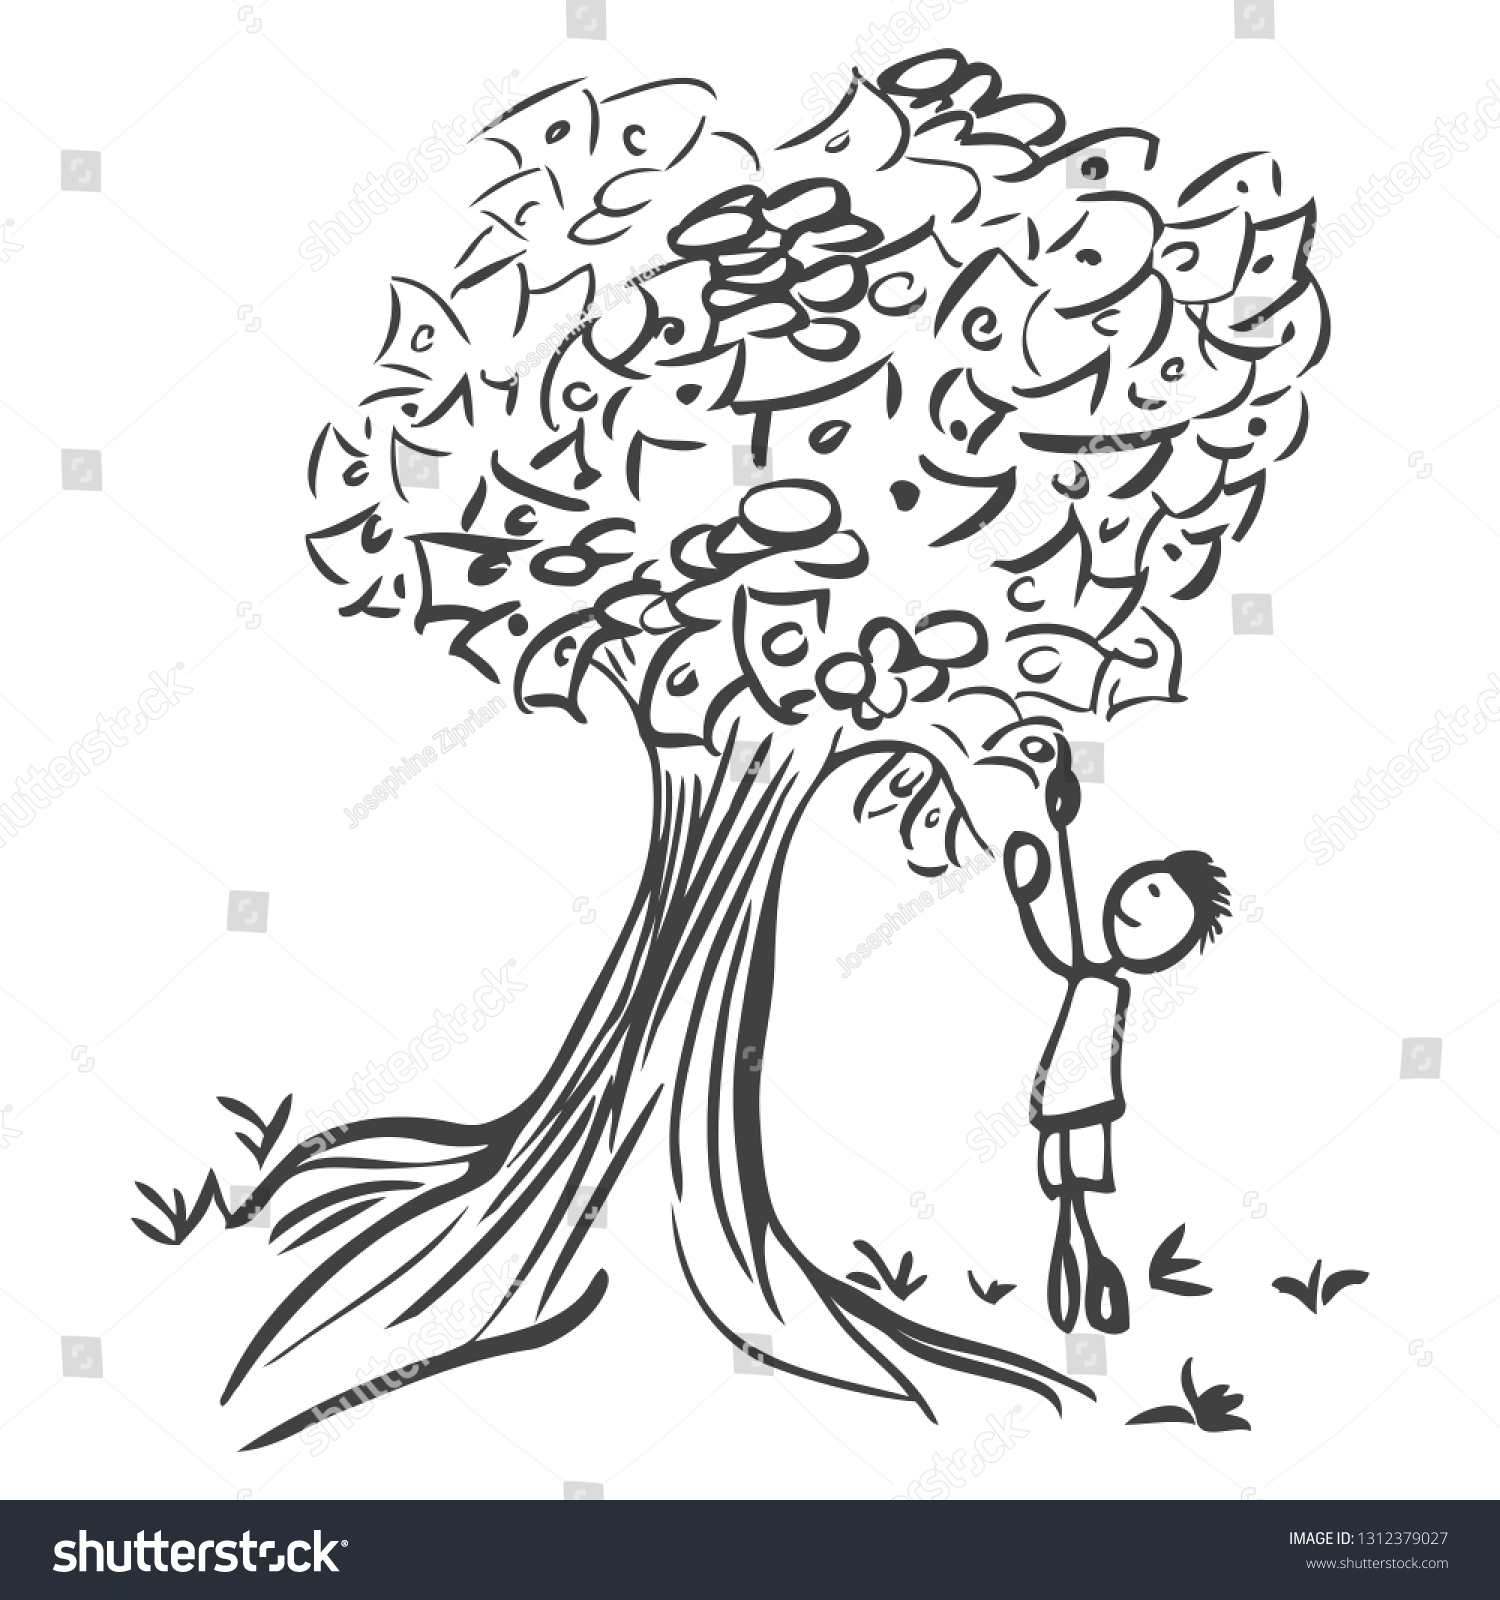 Pencil sketch of a stick man picking money from a tree the outline is dark